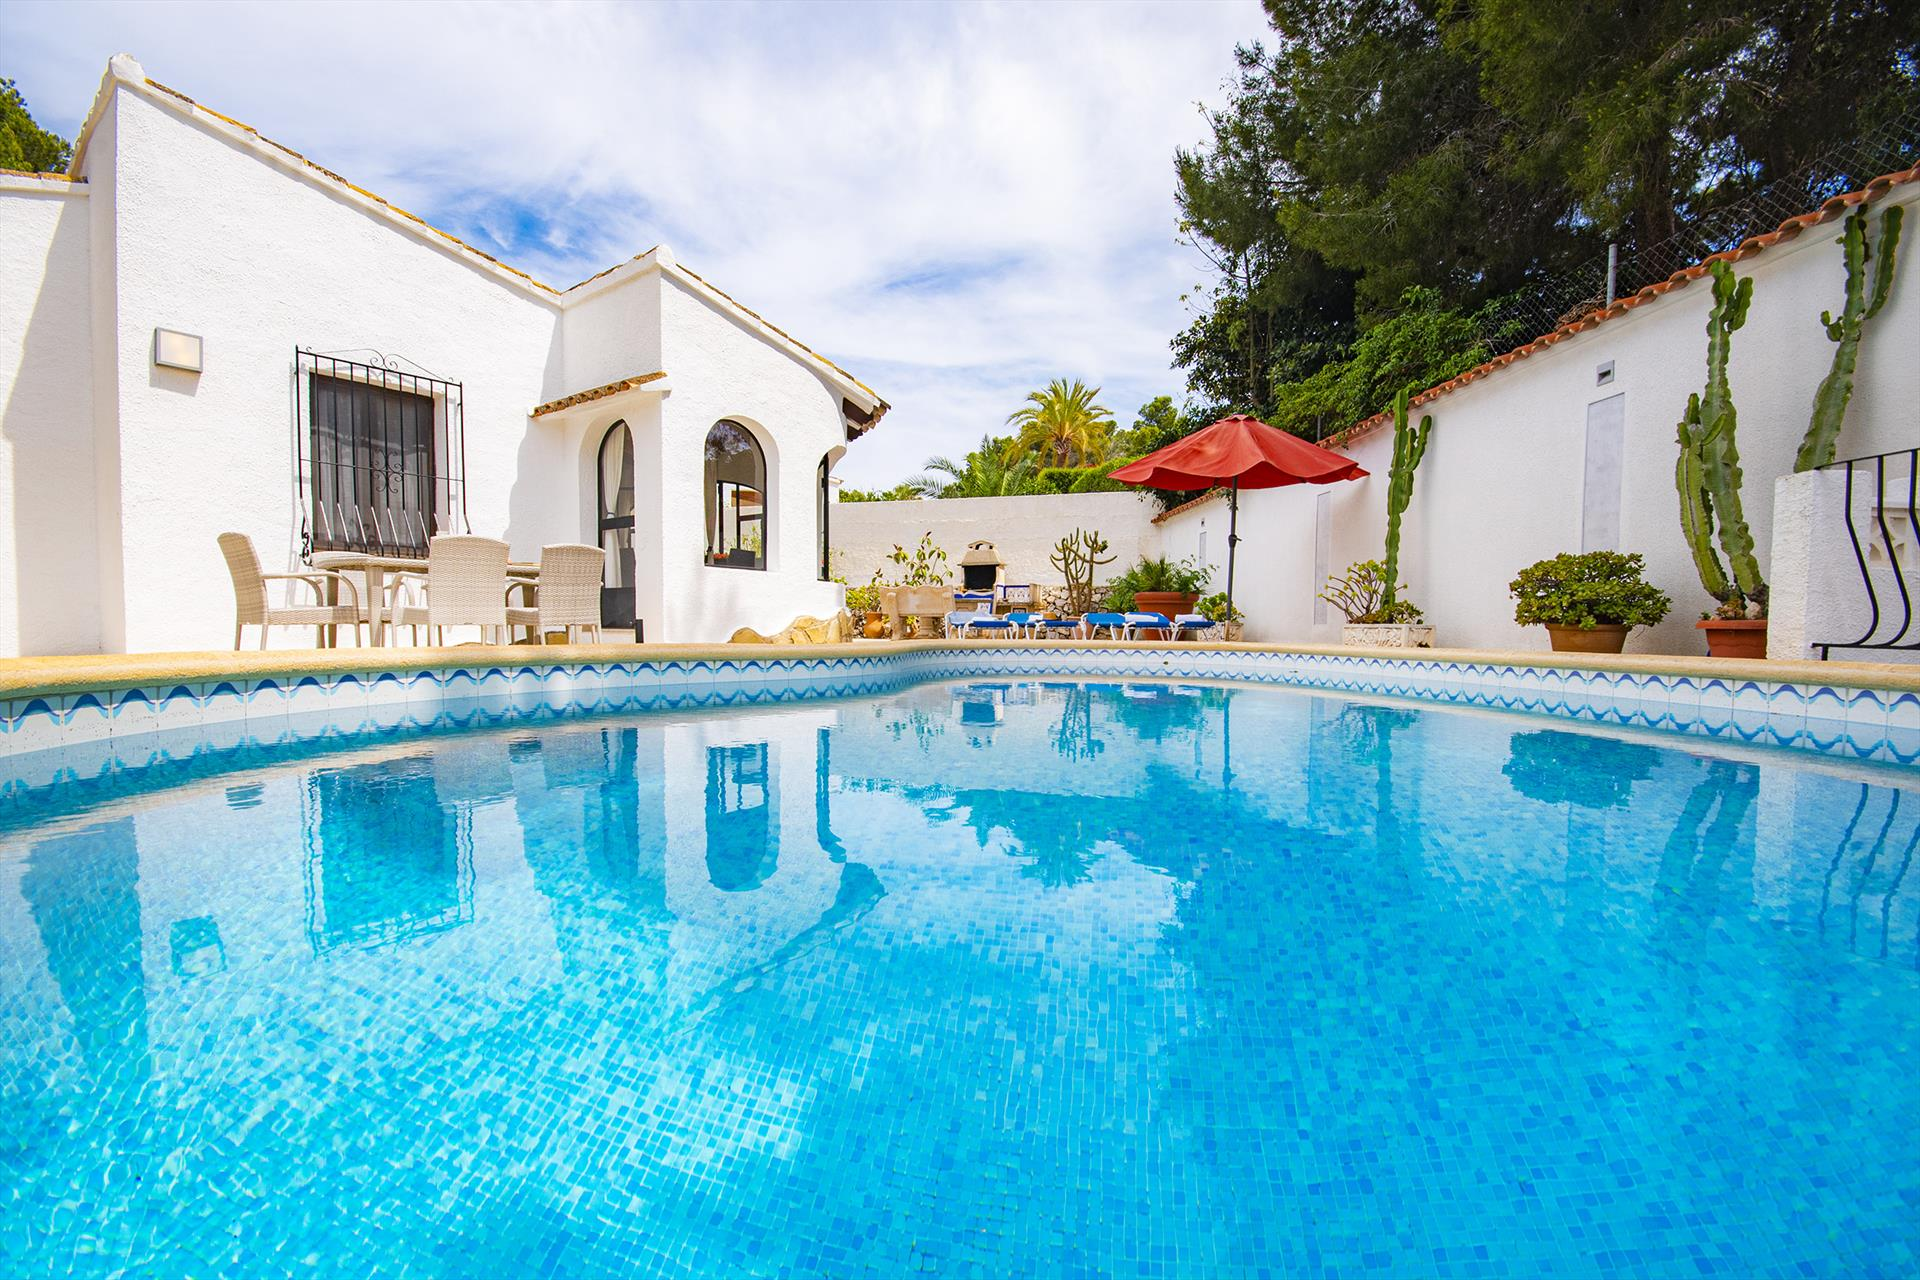 Yvonne, villa with pool for 4 personsliving accommodation and pool area with barbecue,.....